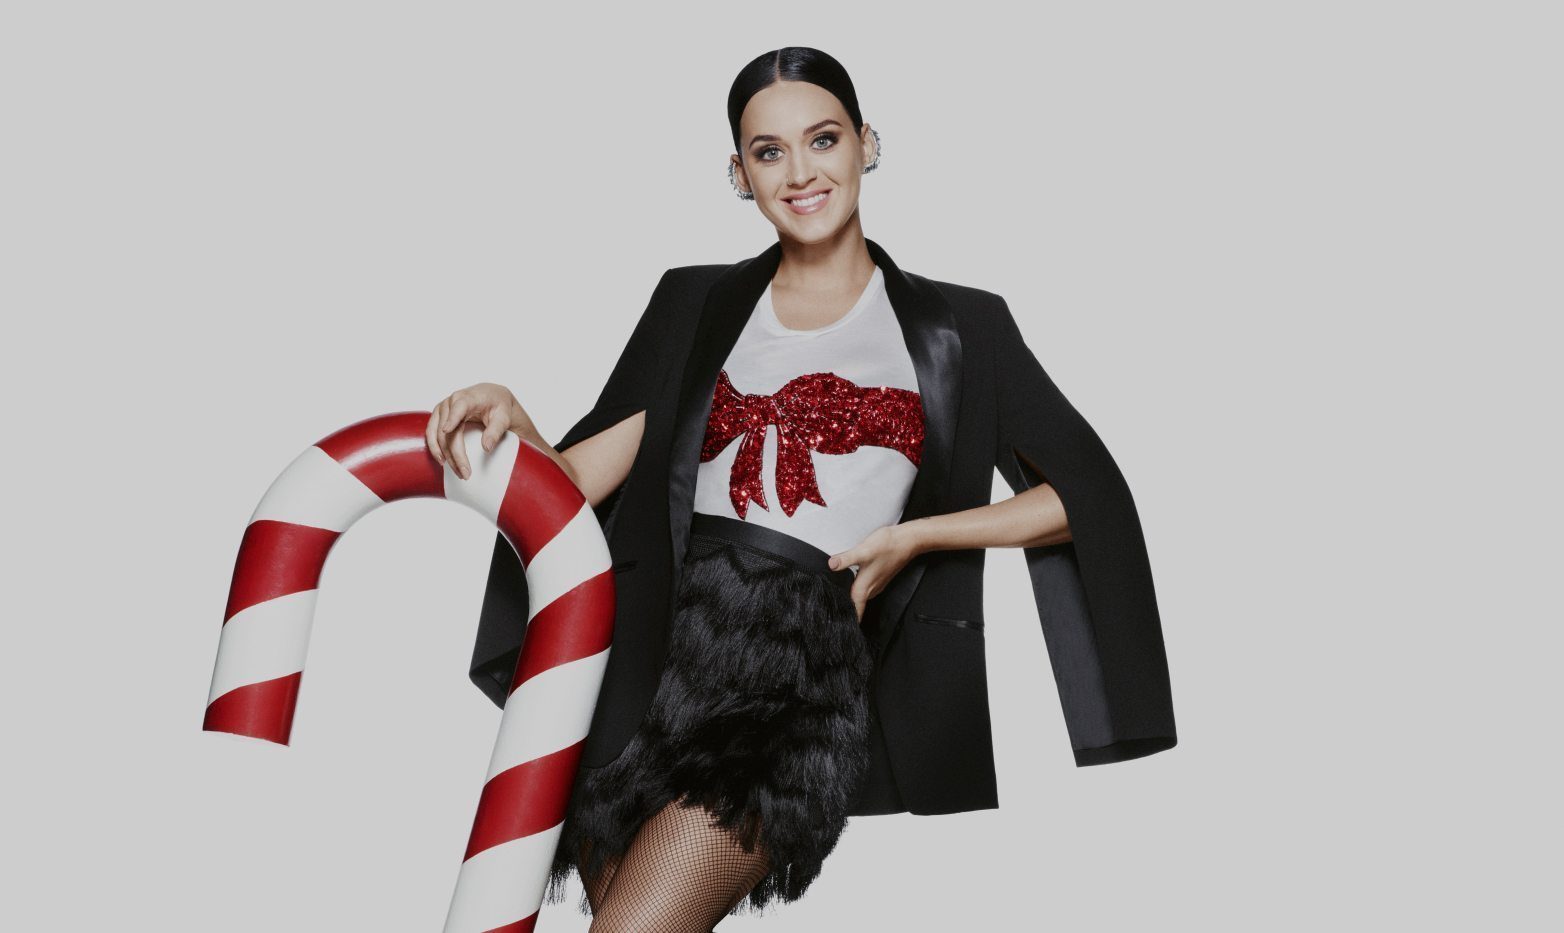 H&M HOLIDAY 2015 COMMERCIAL STARRING KATY PERRY